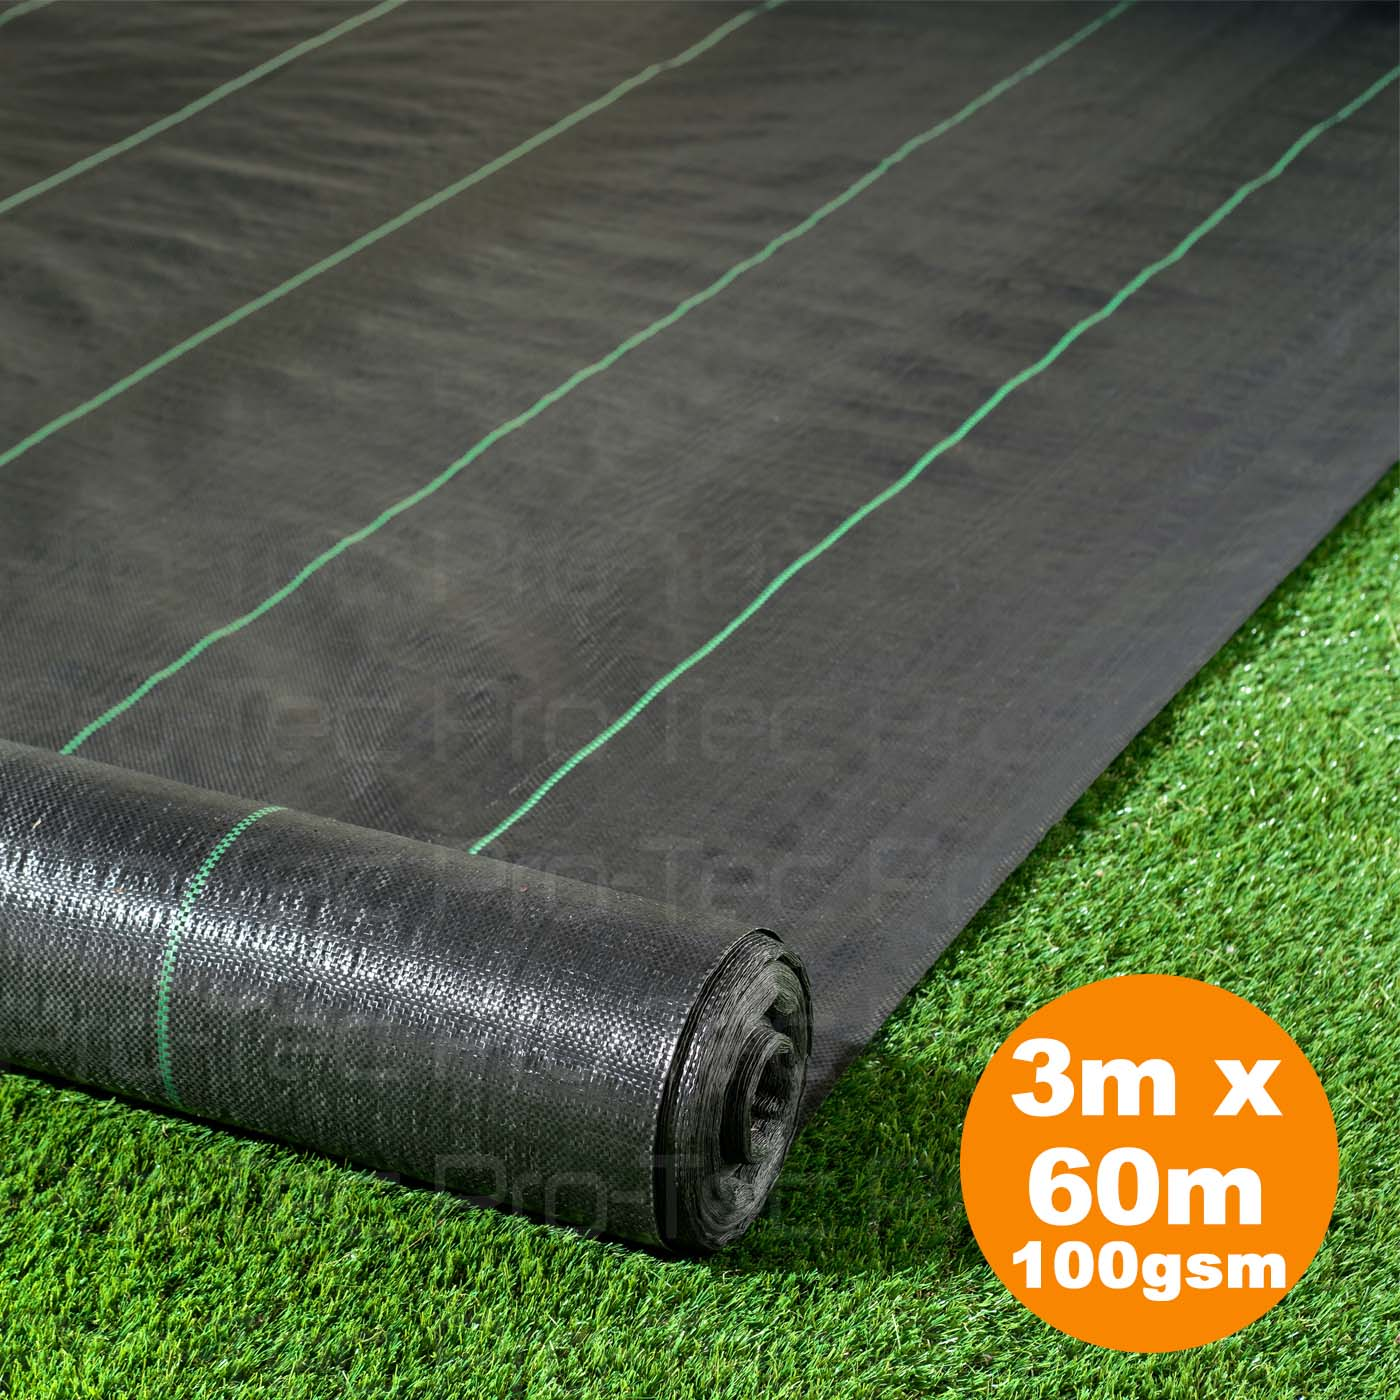 Picture of 3m x 60m Weed Control Landscape Fabric